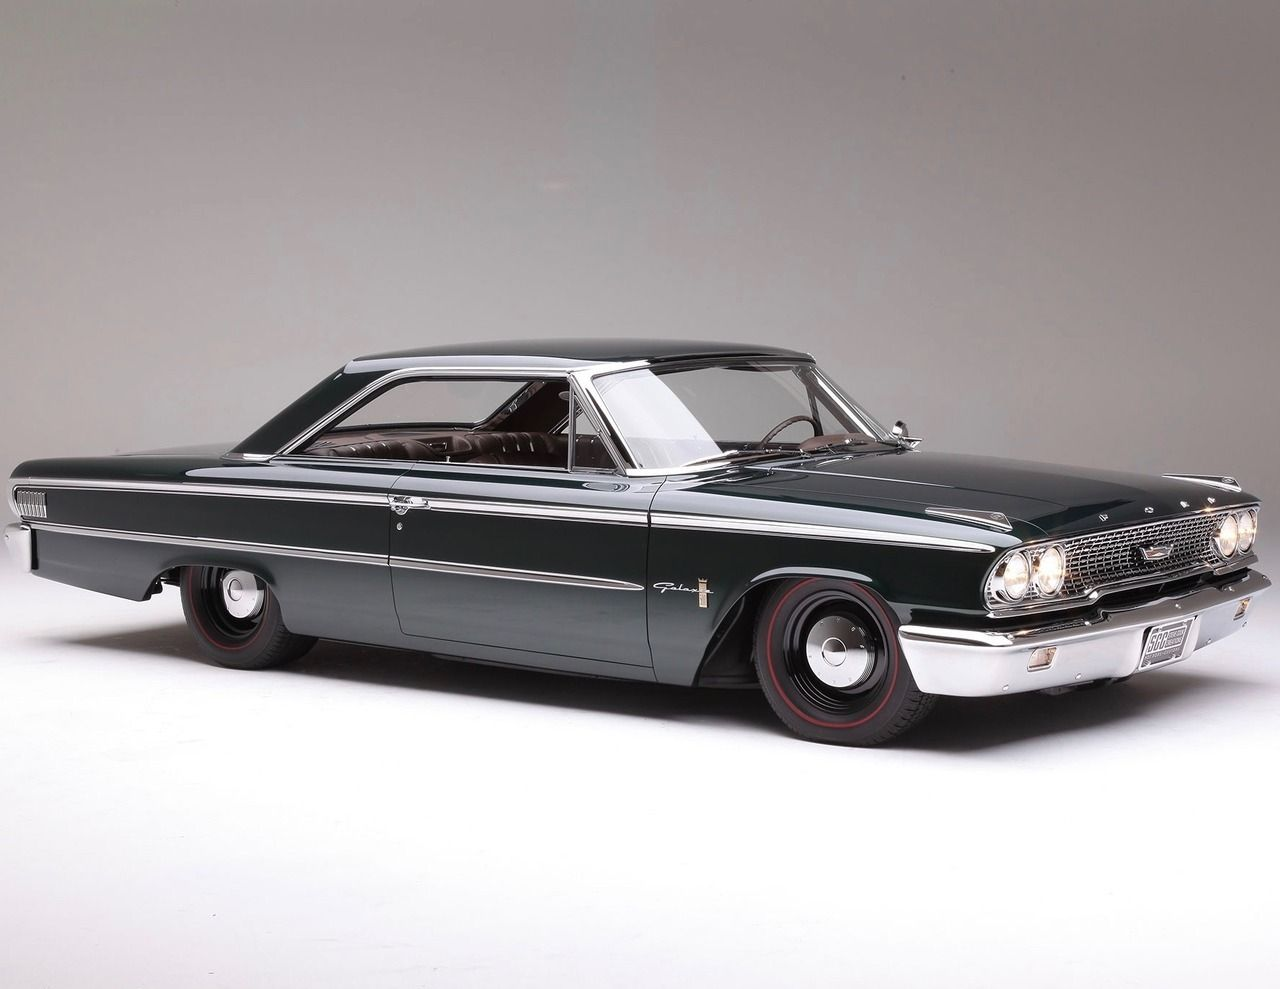 Utwo 1963 Ford Galaxie 500 Sports Hardtop C Eric Geisert Ford Galaxie Ford Galaxie 500 Galaxie 500